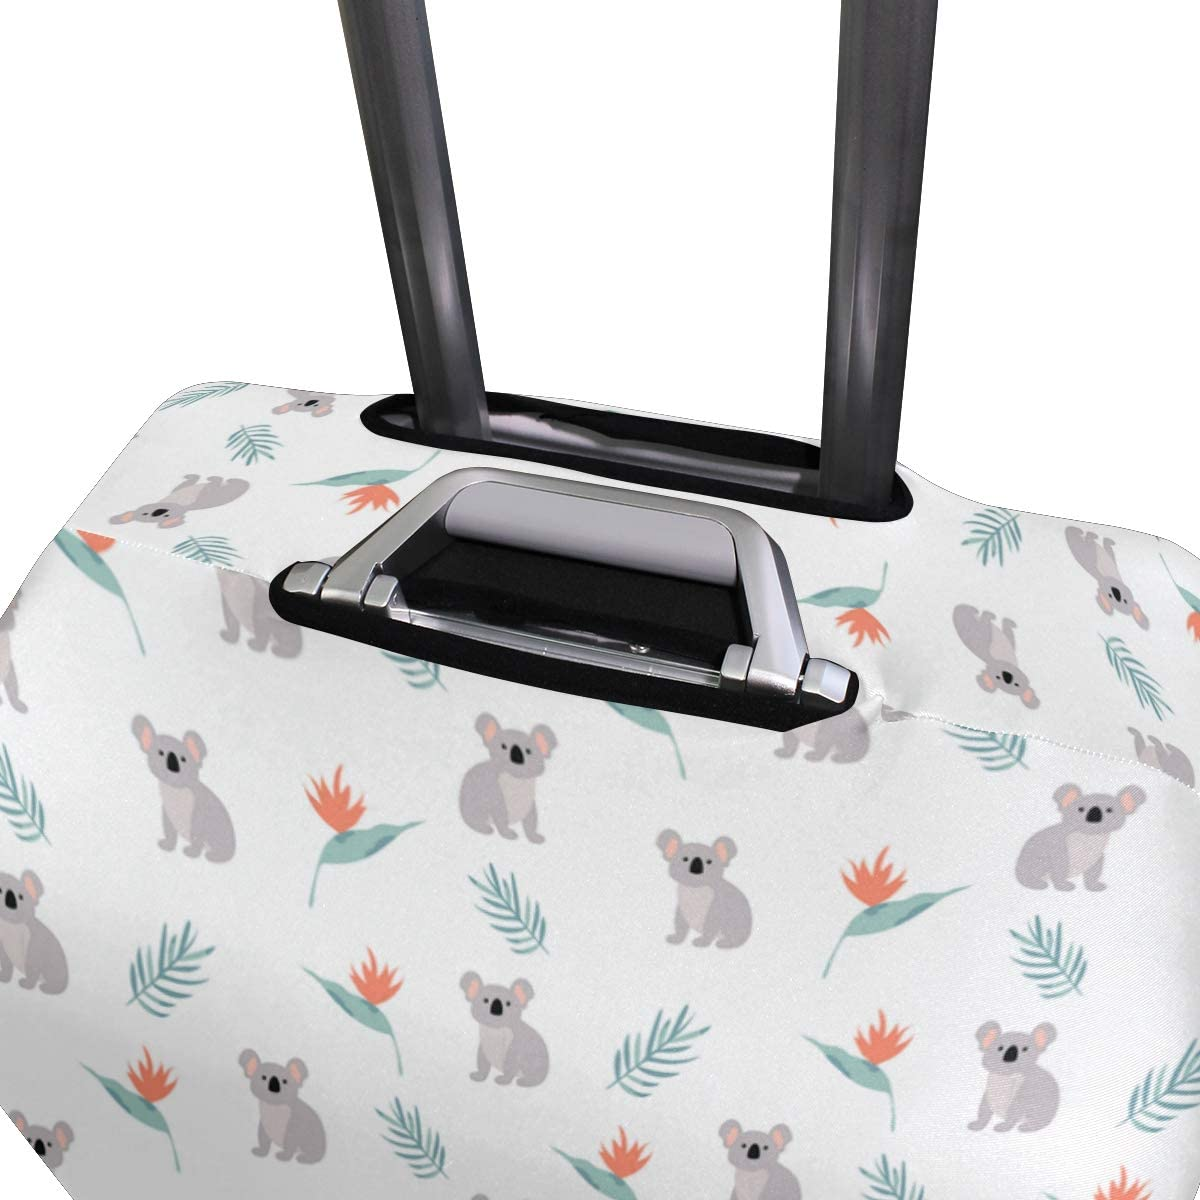 Fashion Travel Koala With Tropical Plant White Luggage Suitcase Protector Washable Baggage Covers